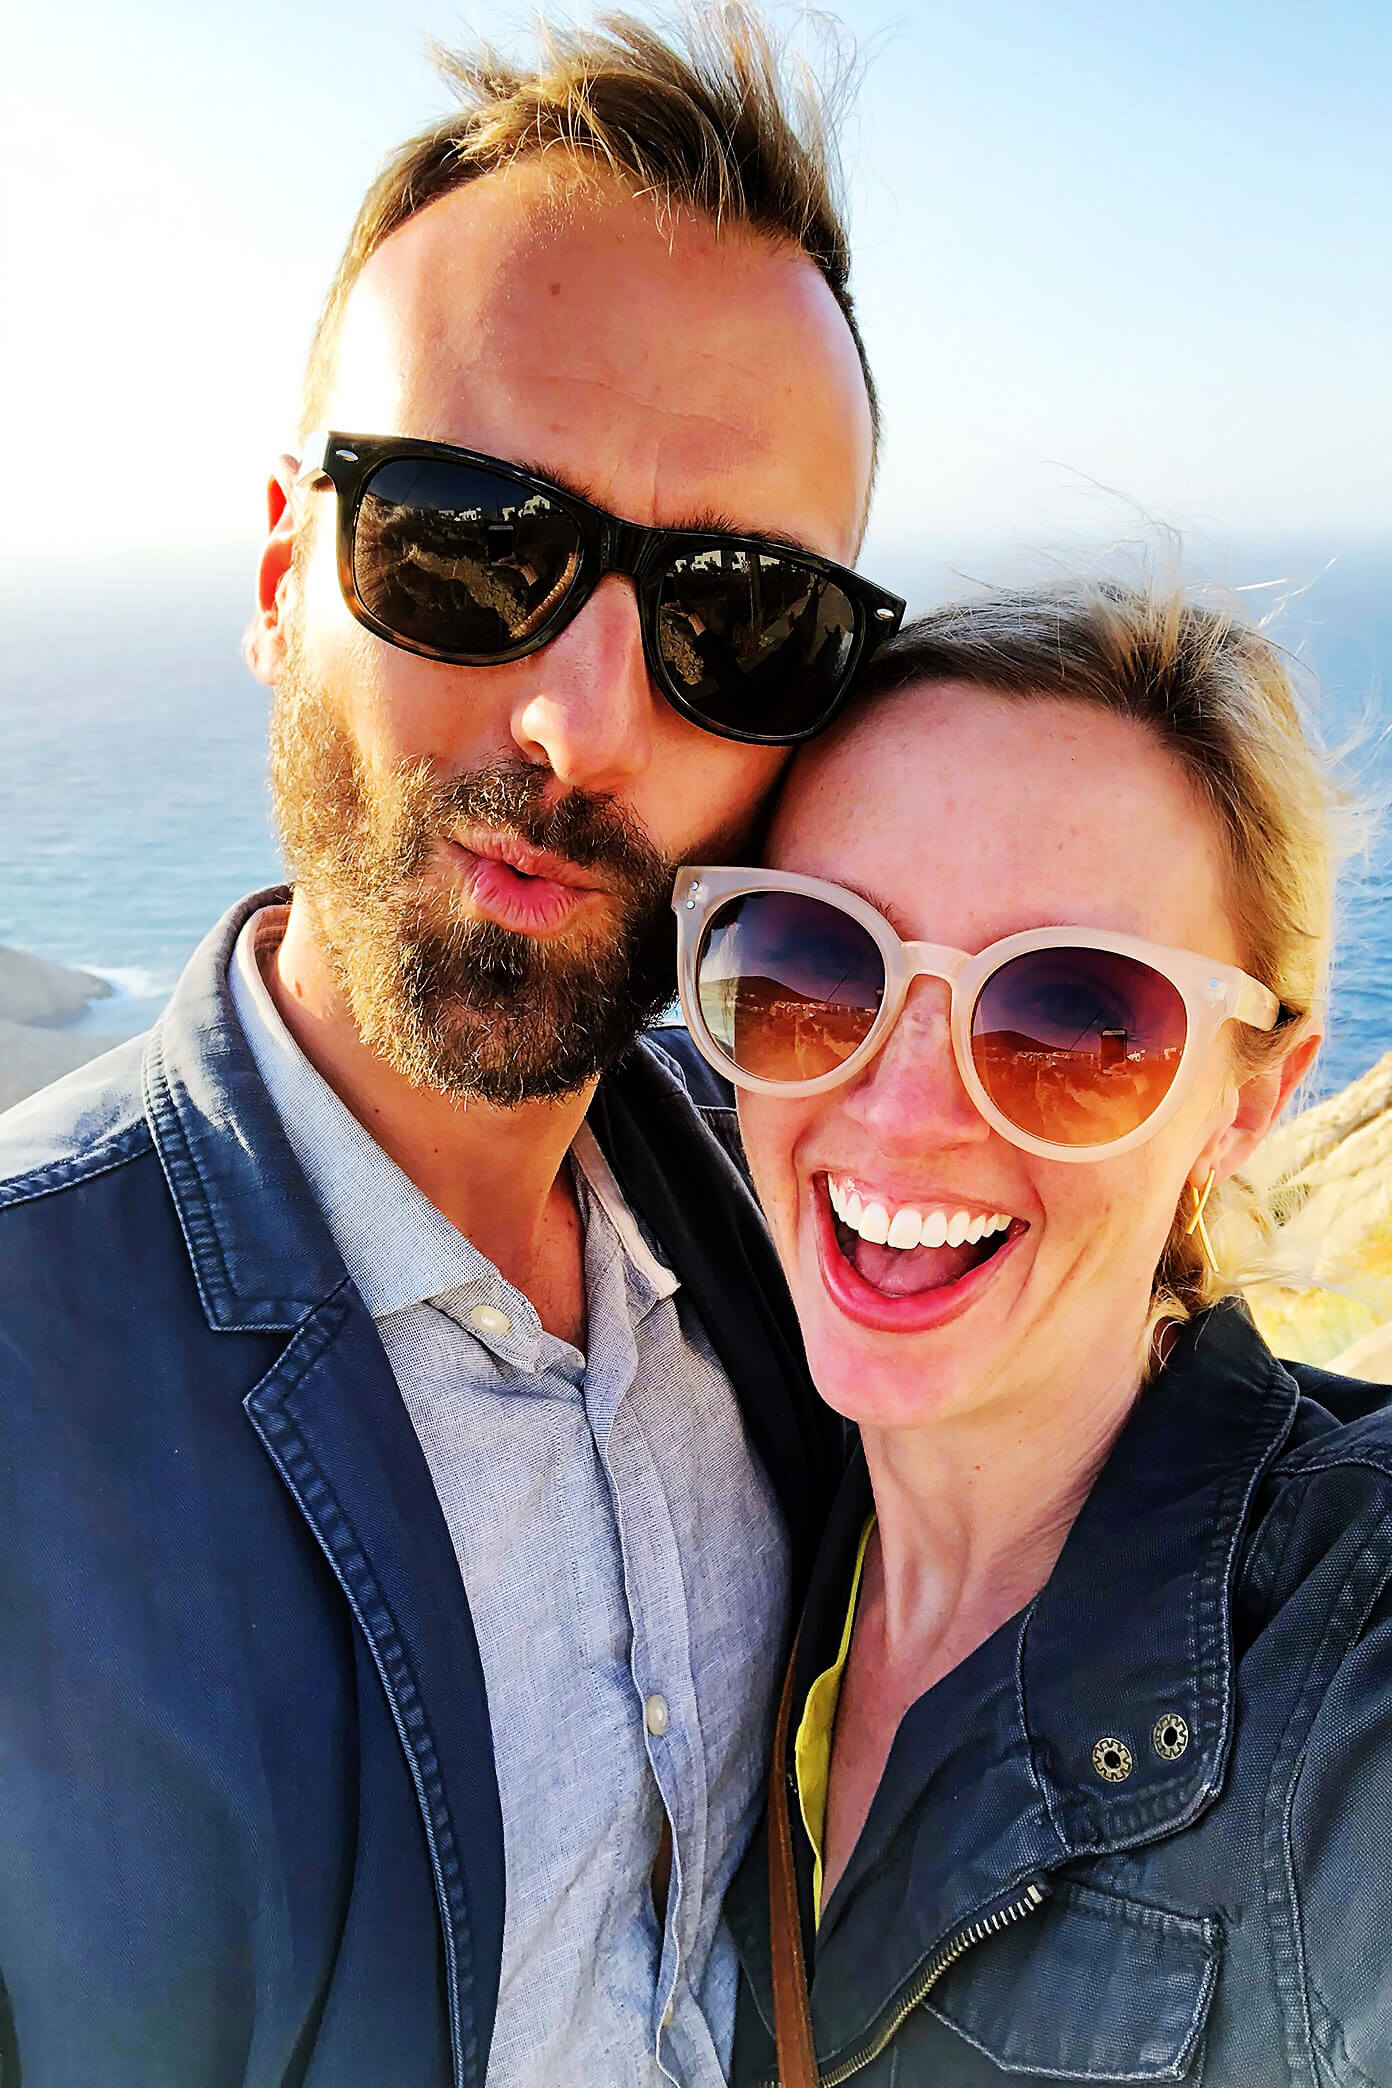 Ali and Barclay on Vacation in Santorini Greece